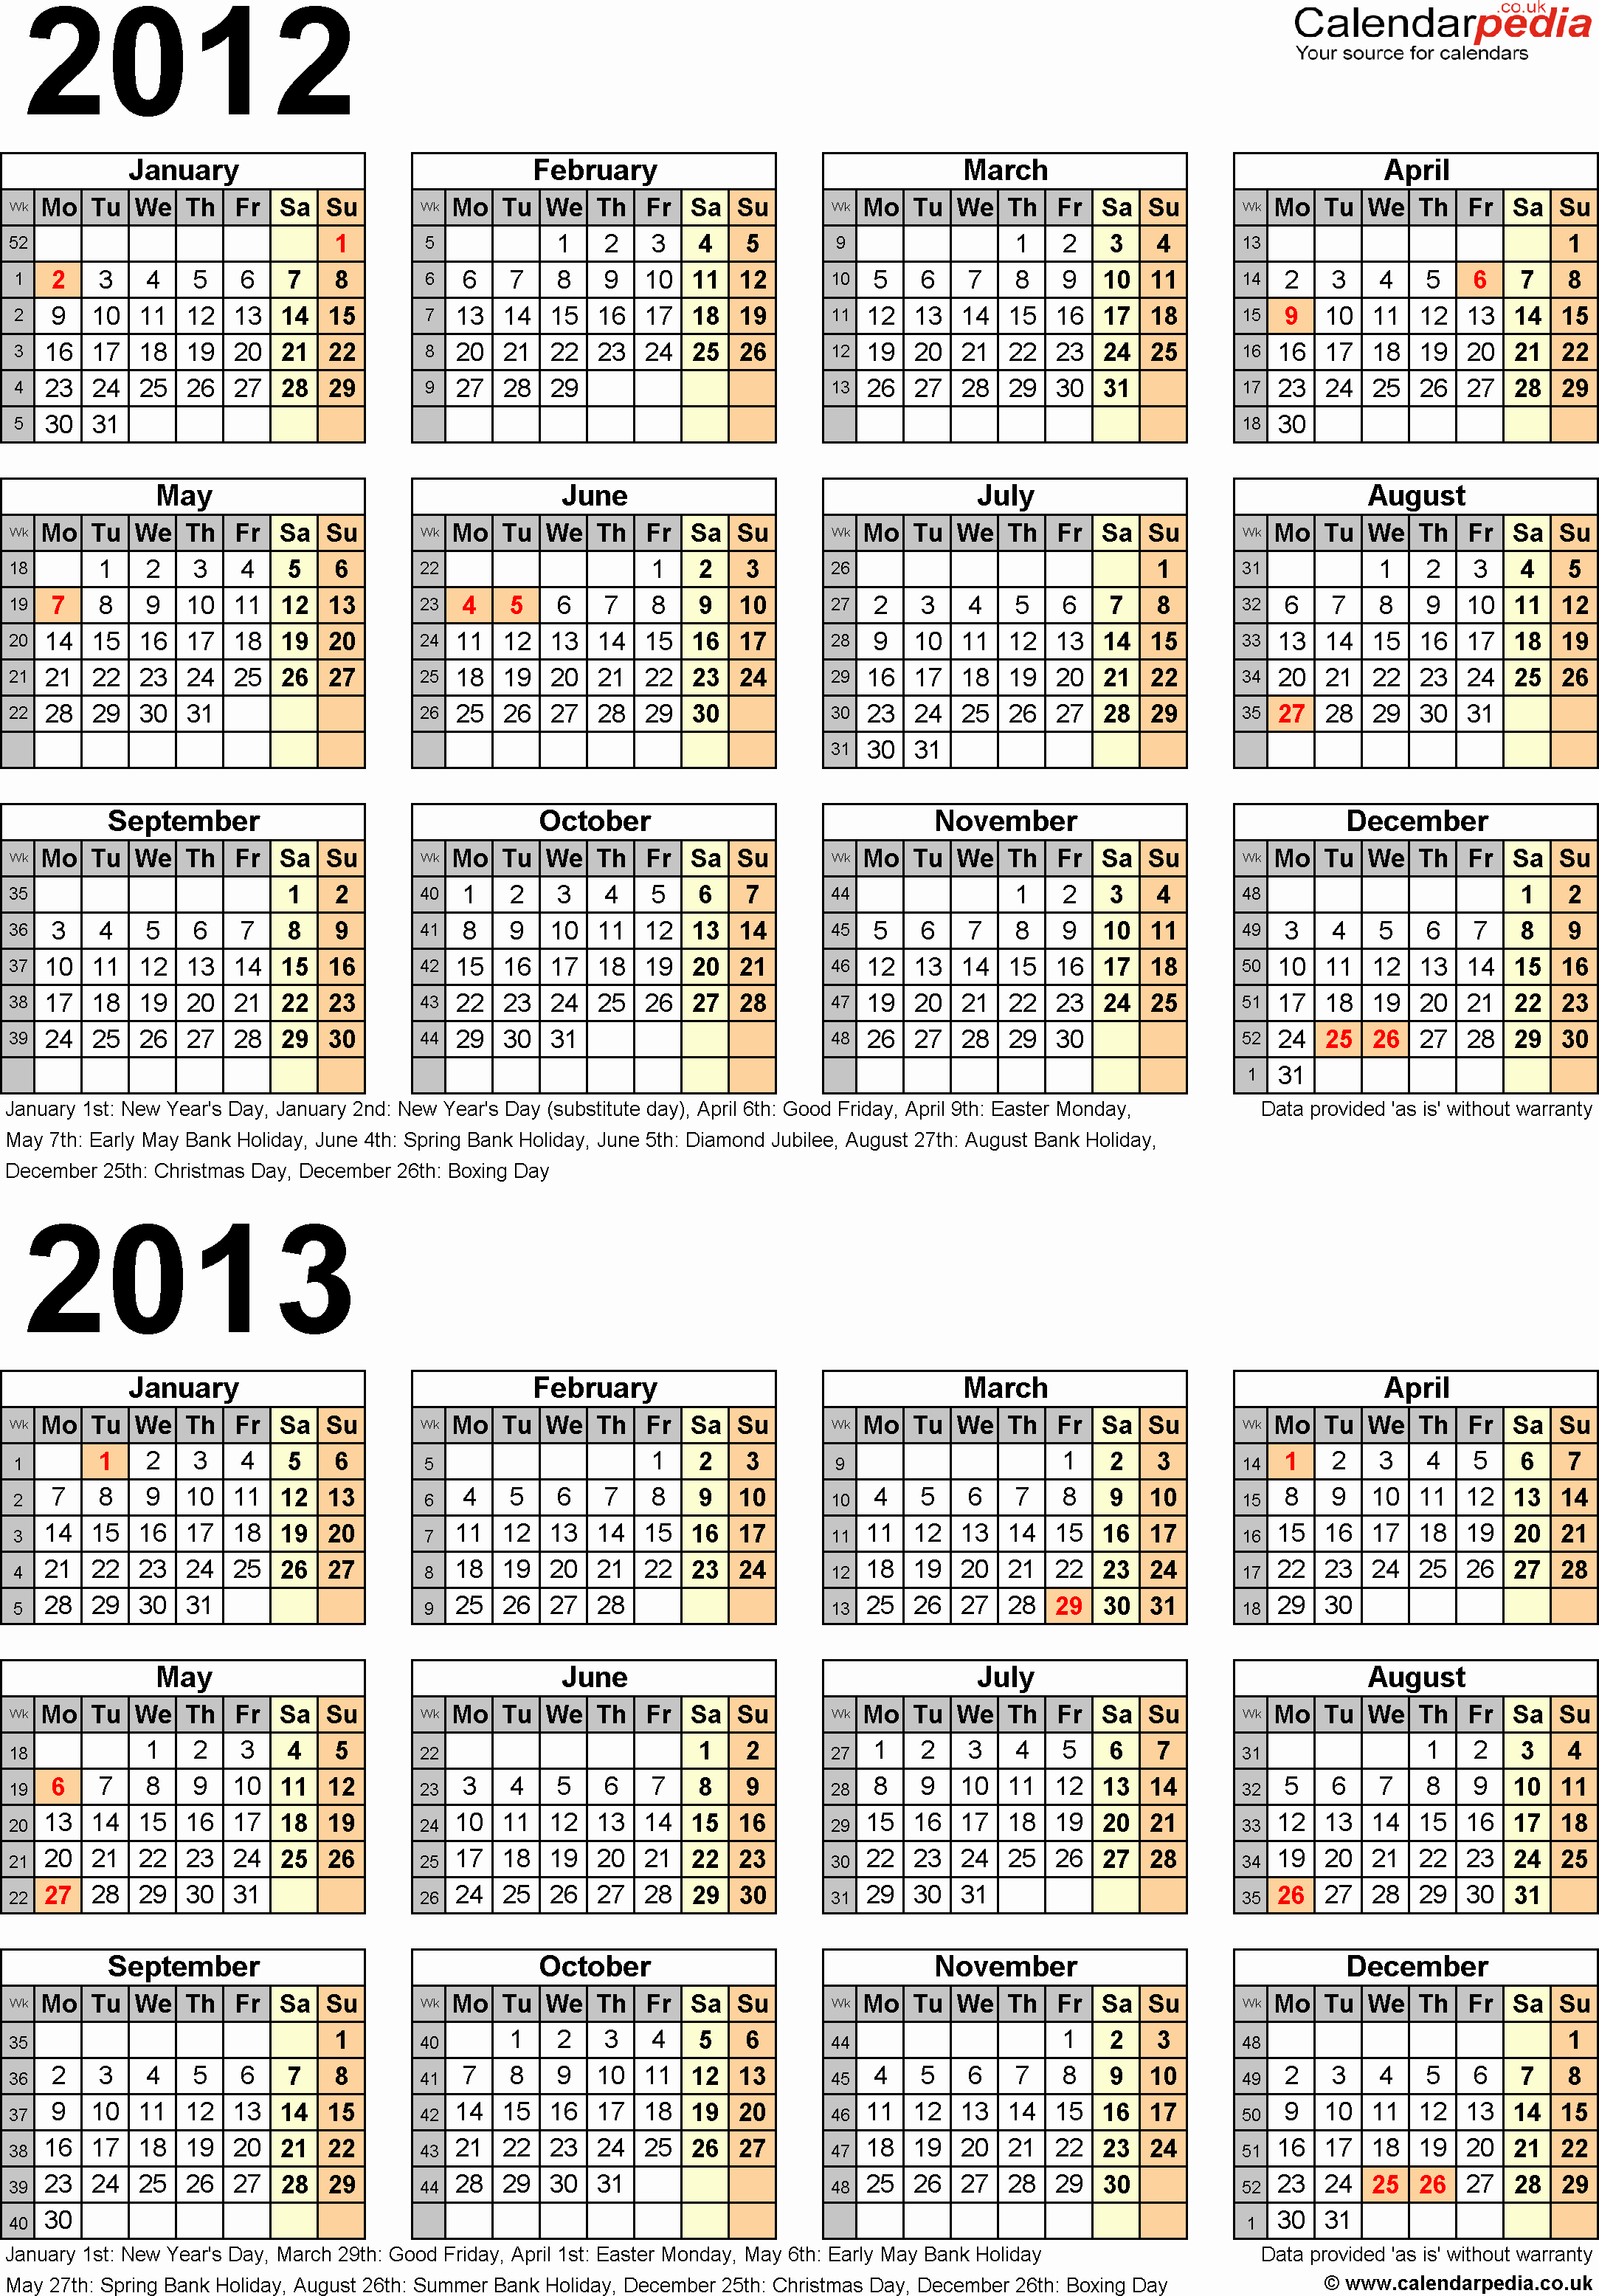 2013 Calendar Printable One Page Fresh Two Year Calendars for 2012 & 2013 Uk for Excel